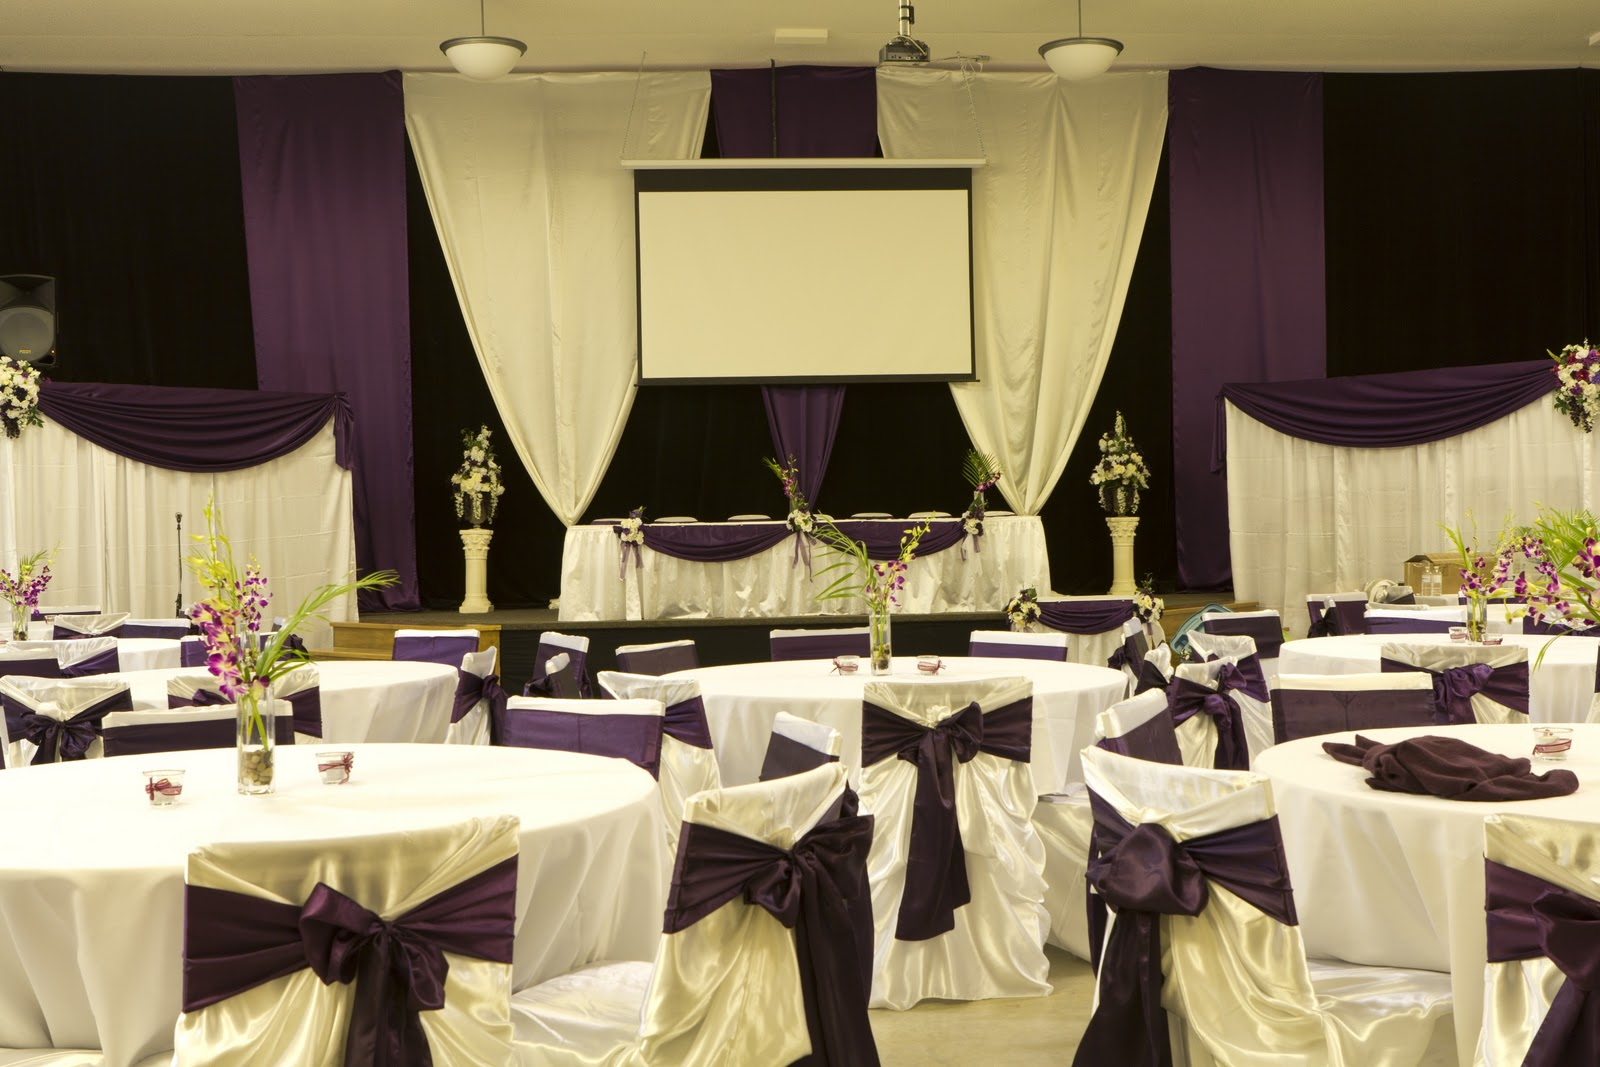 Chair Cover Rentals Victoria Bc Kd Smart Owner S Manual Wedding Decoration Reception Decor